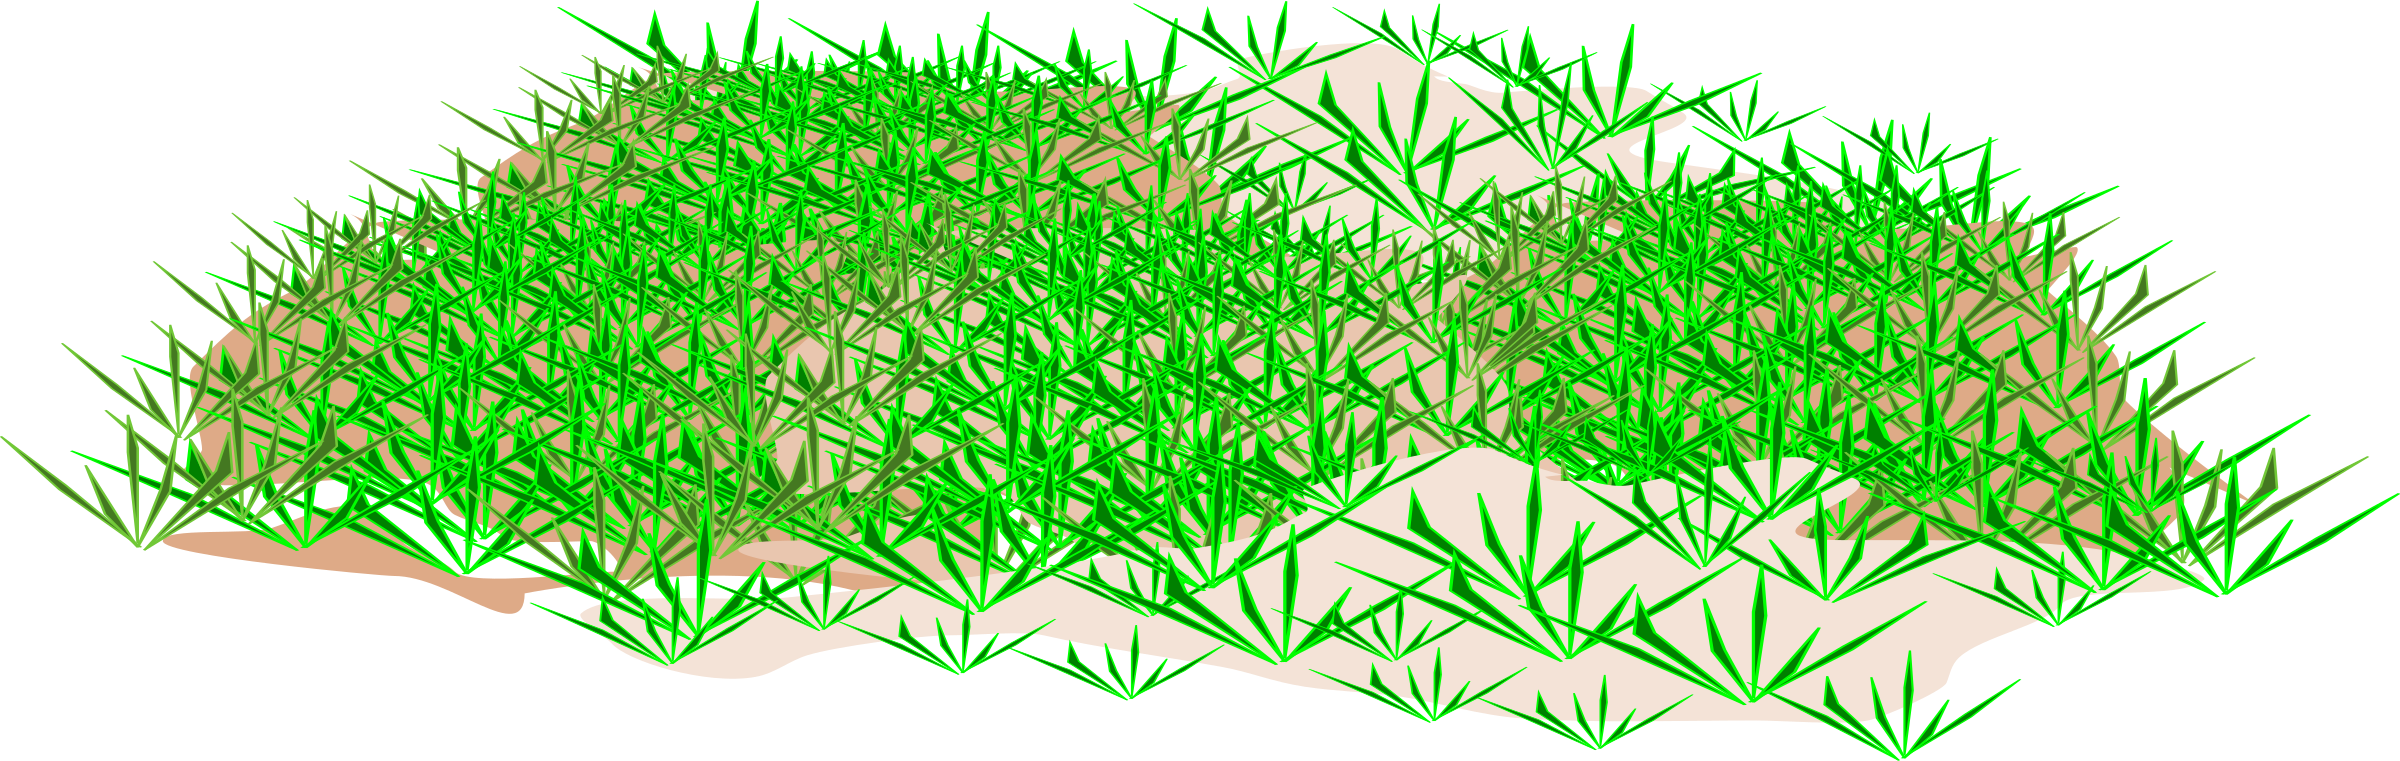 grass clip art free clipart panda free clipart images - 2400×761